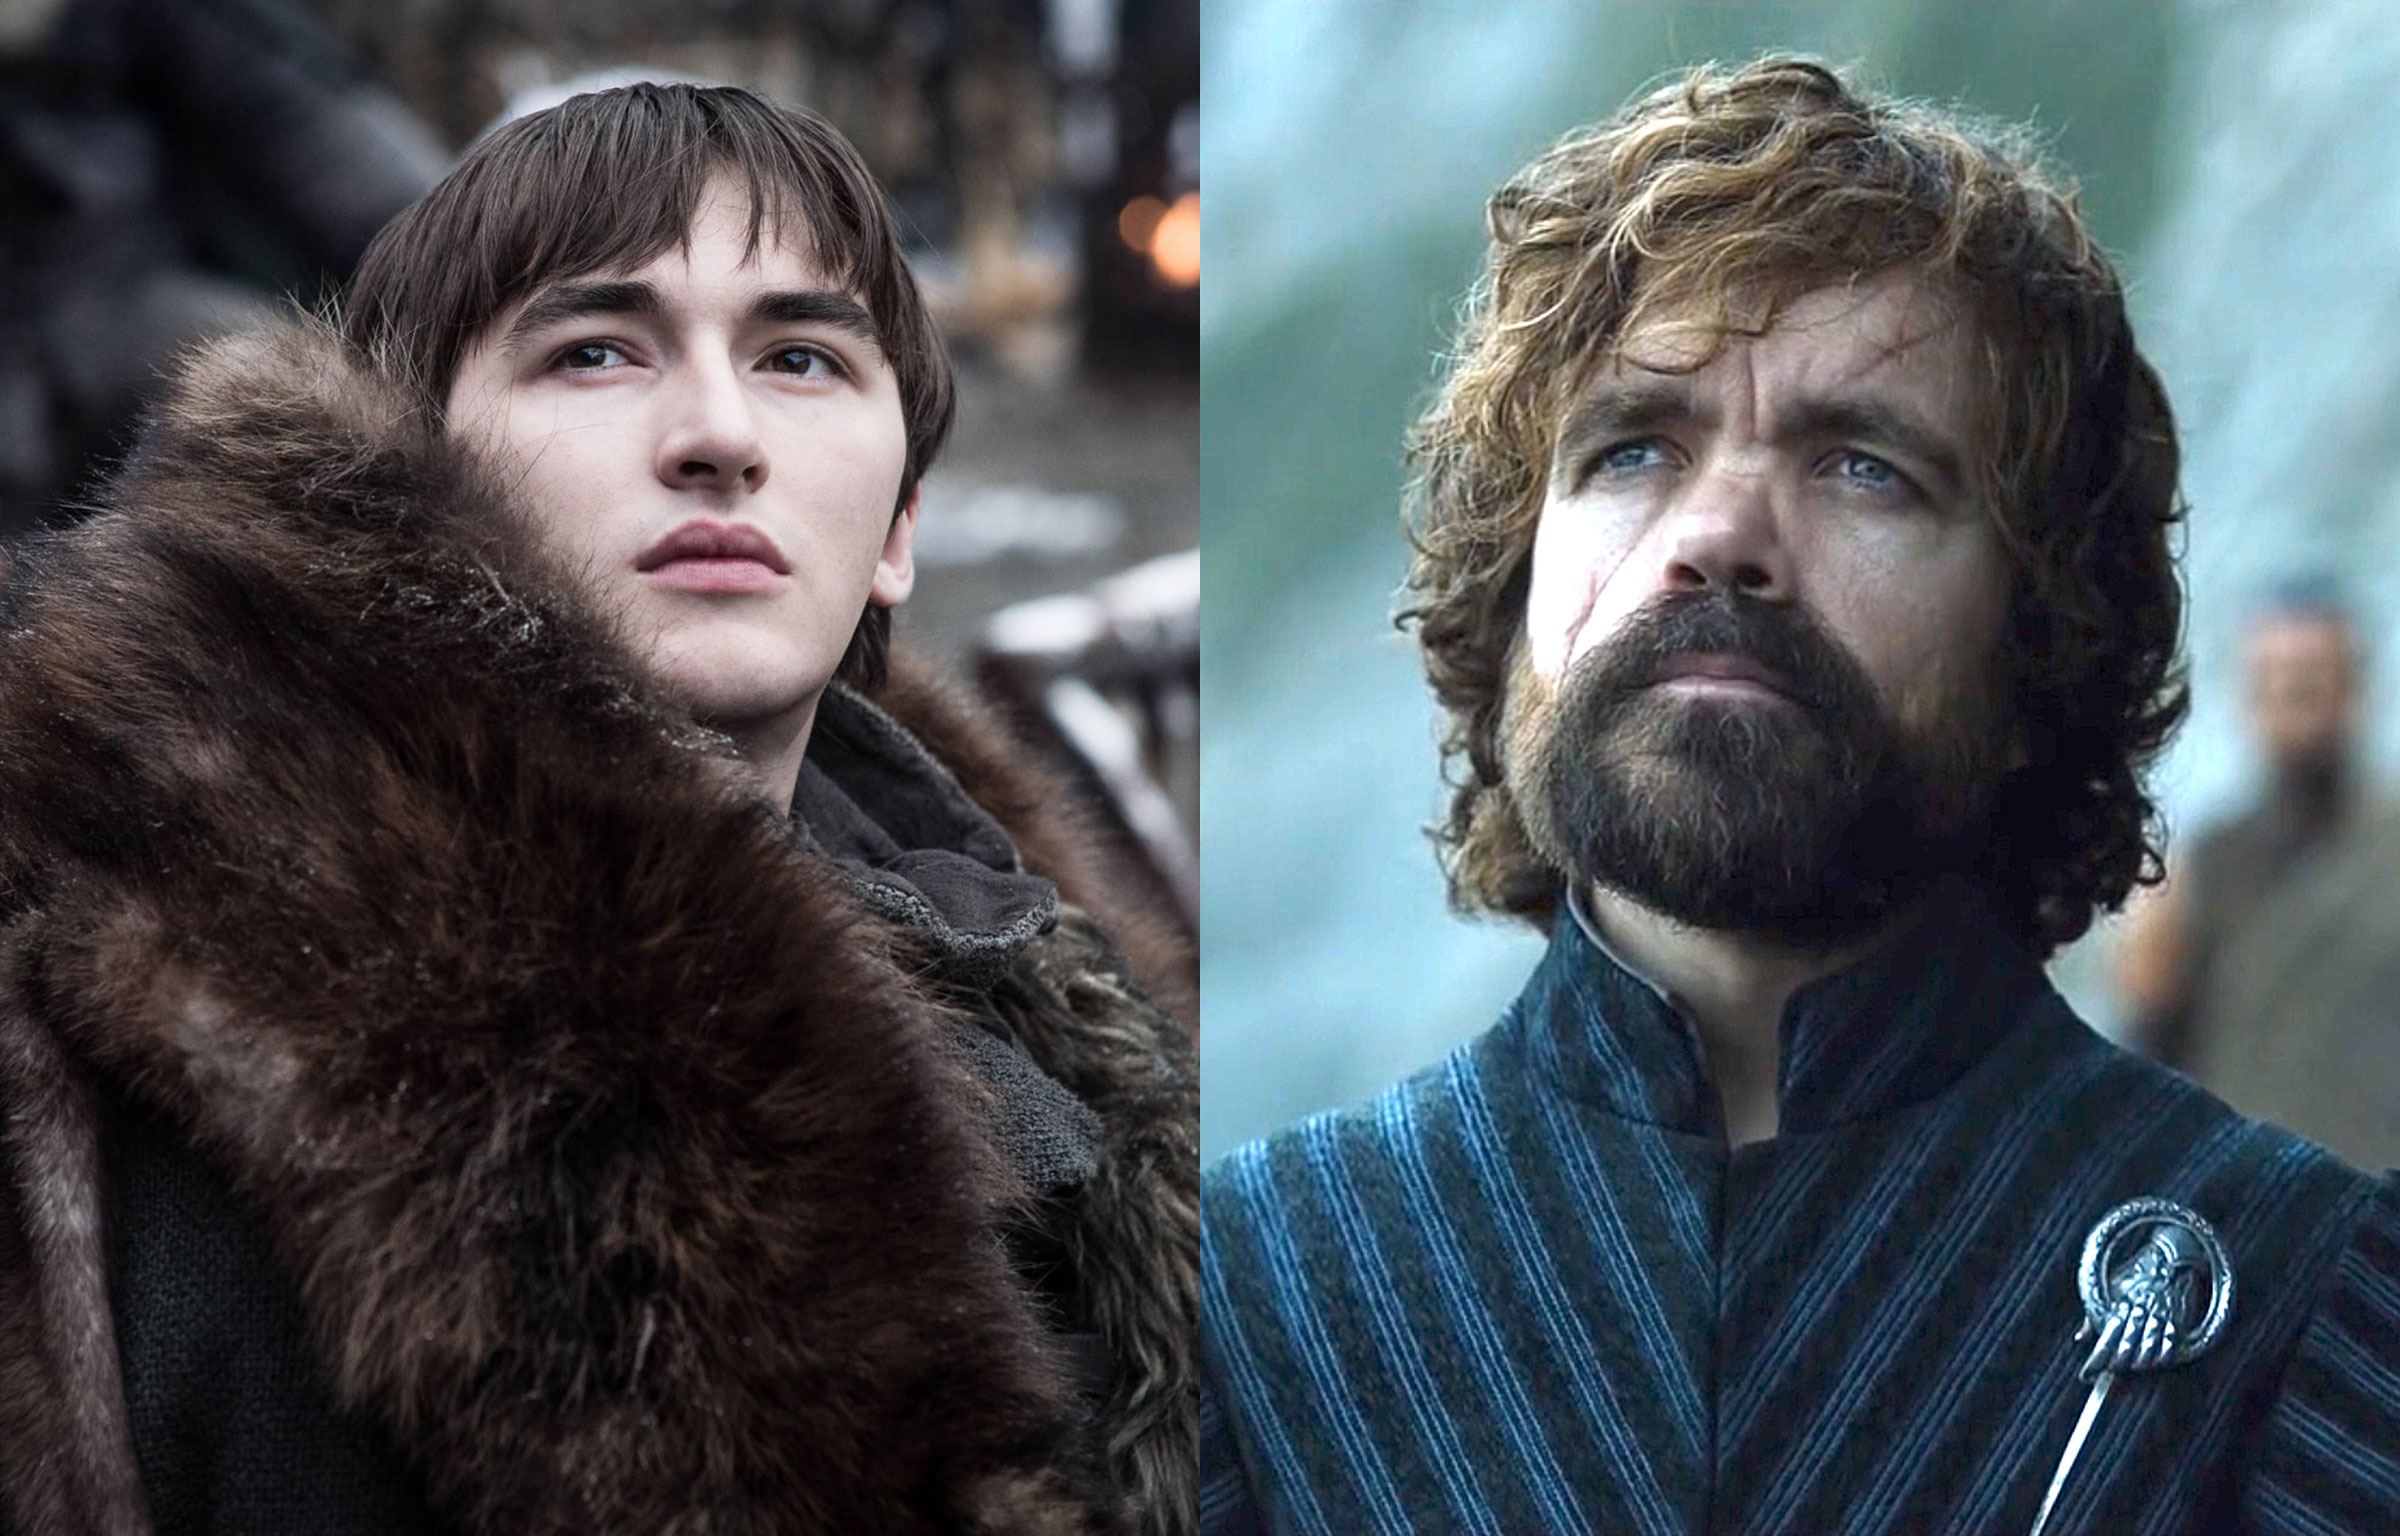 two white people—one in a wheelchair and one who is a little person—in a side-by-side photo from Game of Thrones